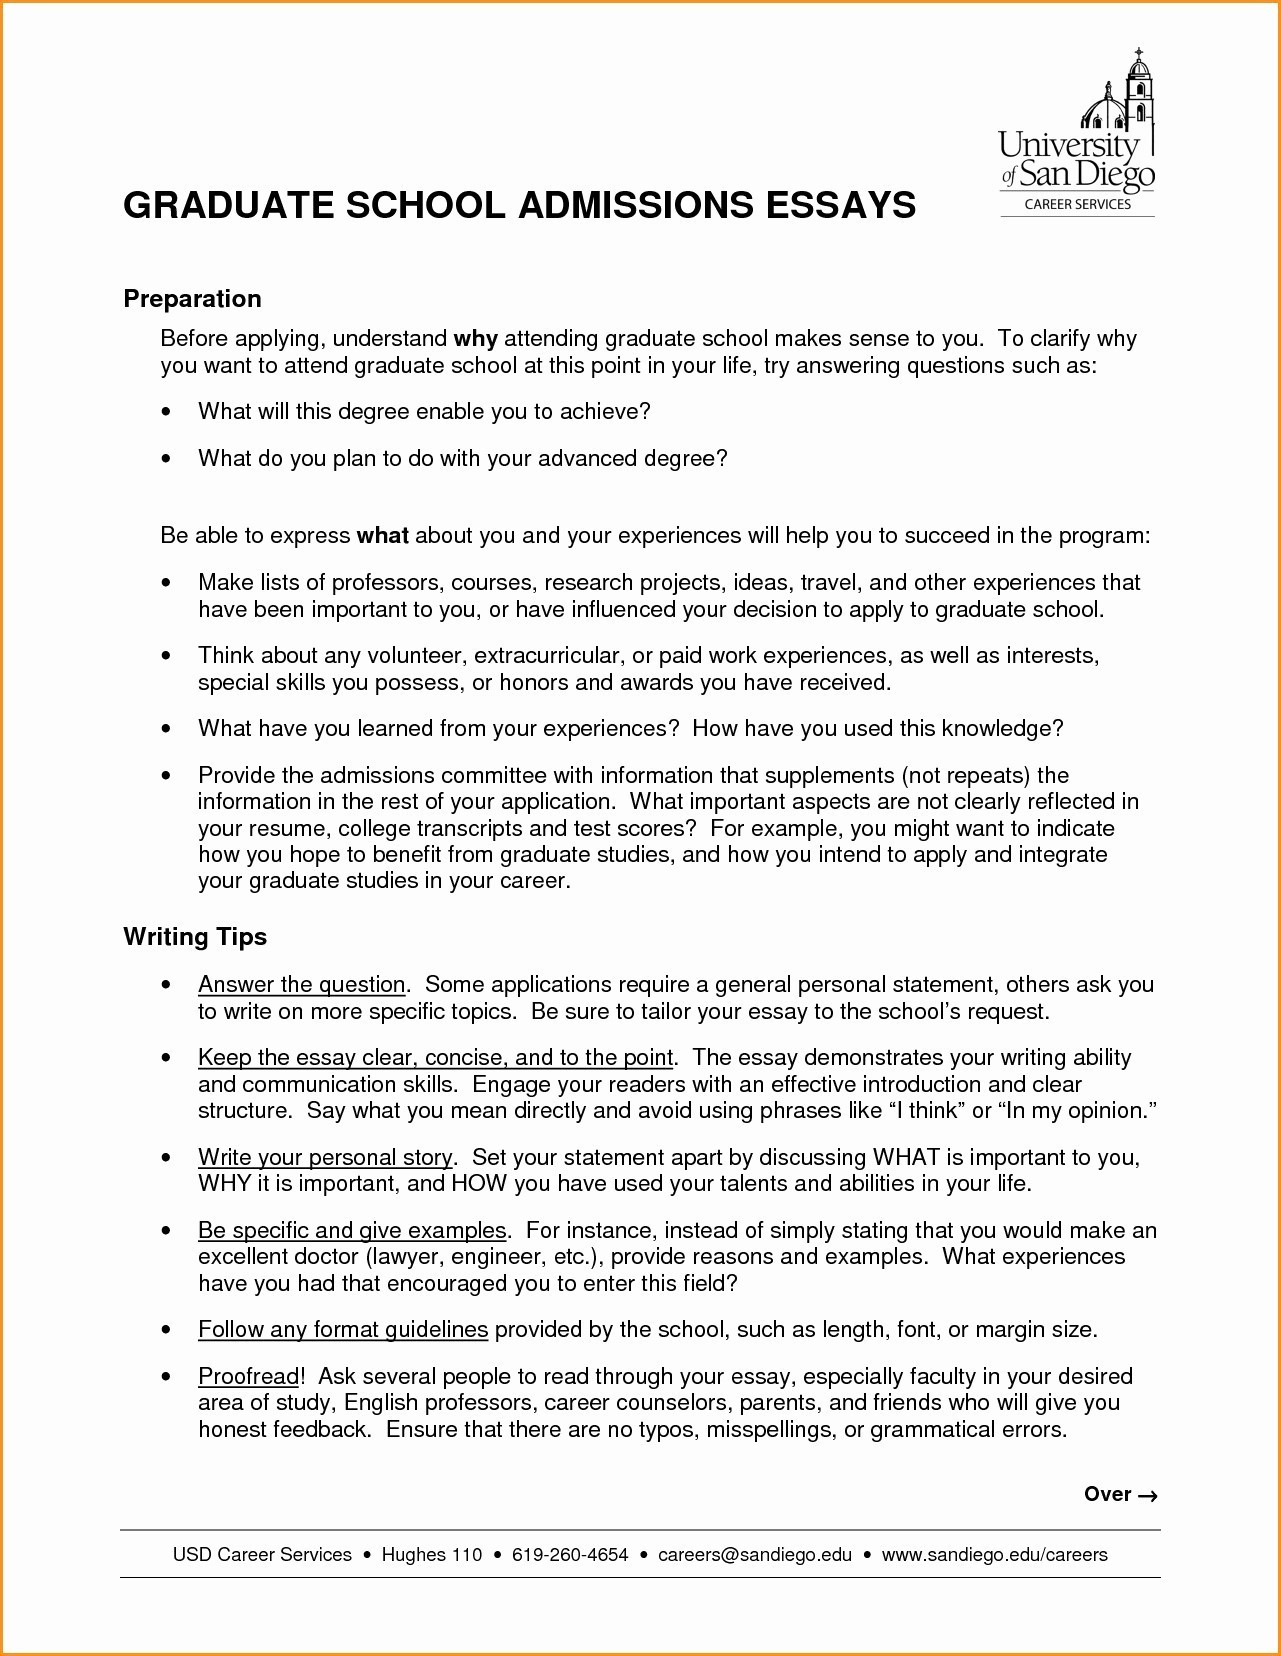 resume for graduate school admission template example-Graduate School Cover Letter Template 15 Beautiful Graduate School Application Resume 7-d